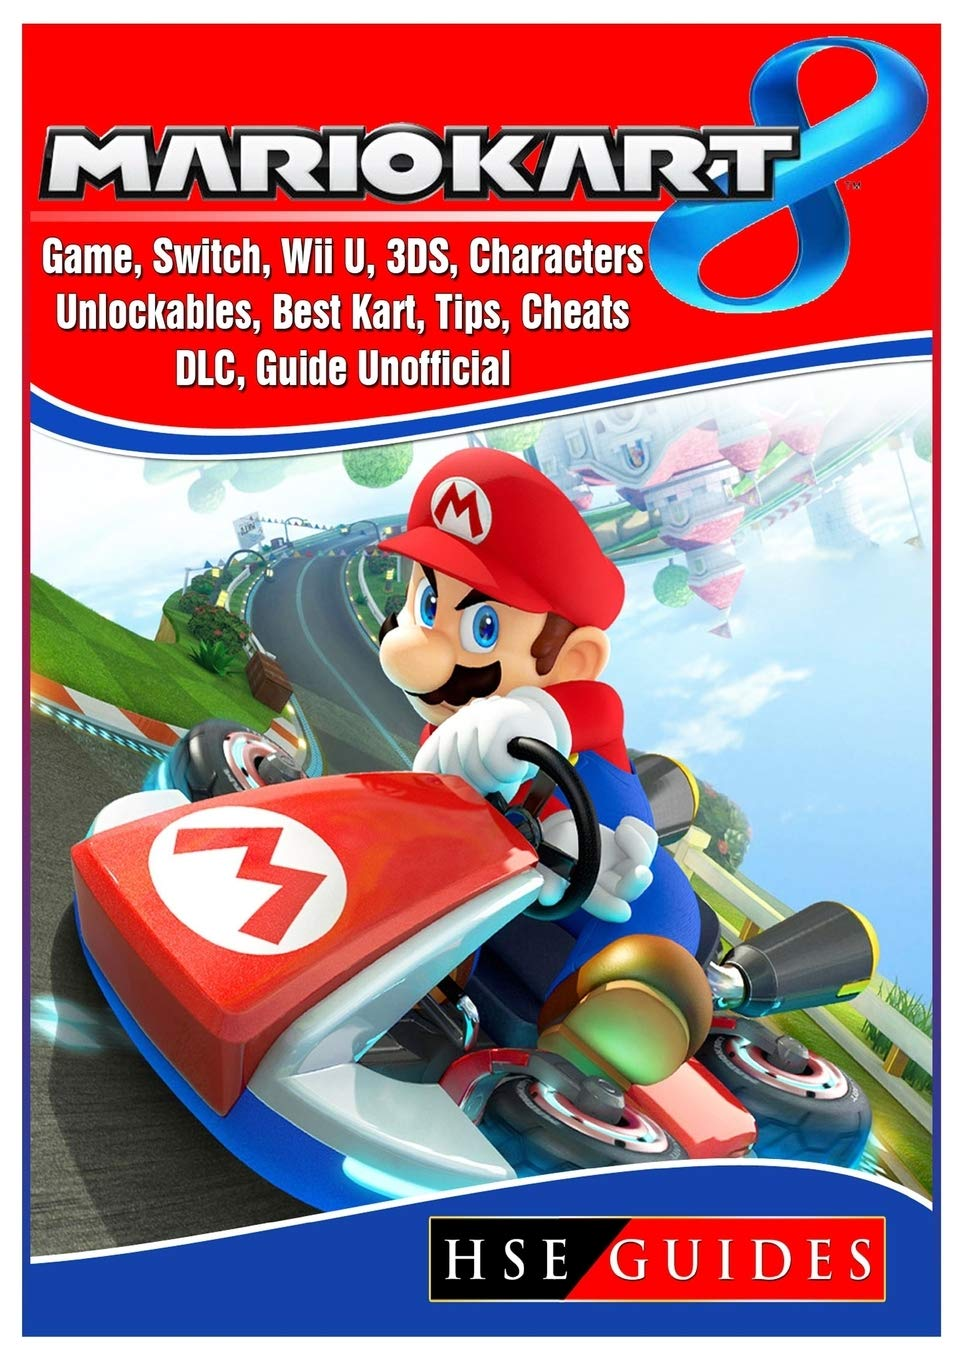 Mario Kart 8 Game, Switch, Wii U, 3DS, Characters, Unlockables, Best Kart, Tips, Cheats, DLC, Guide Unofficial: Amazon.es: Guides, HSE: Libros en idiomas extranjeros